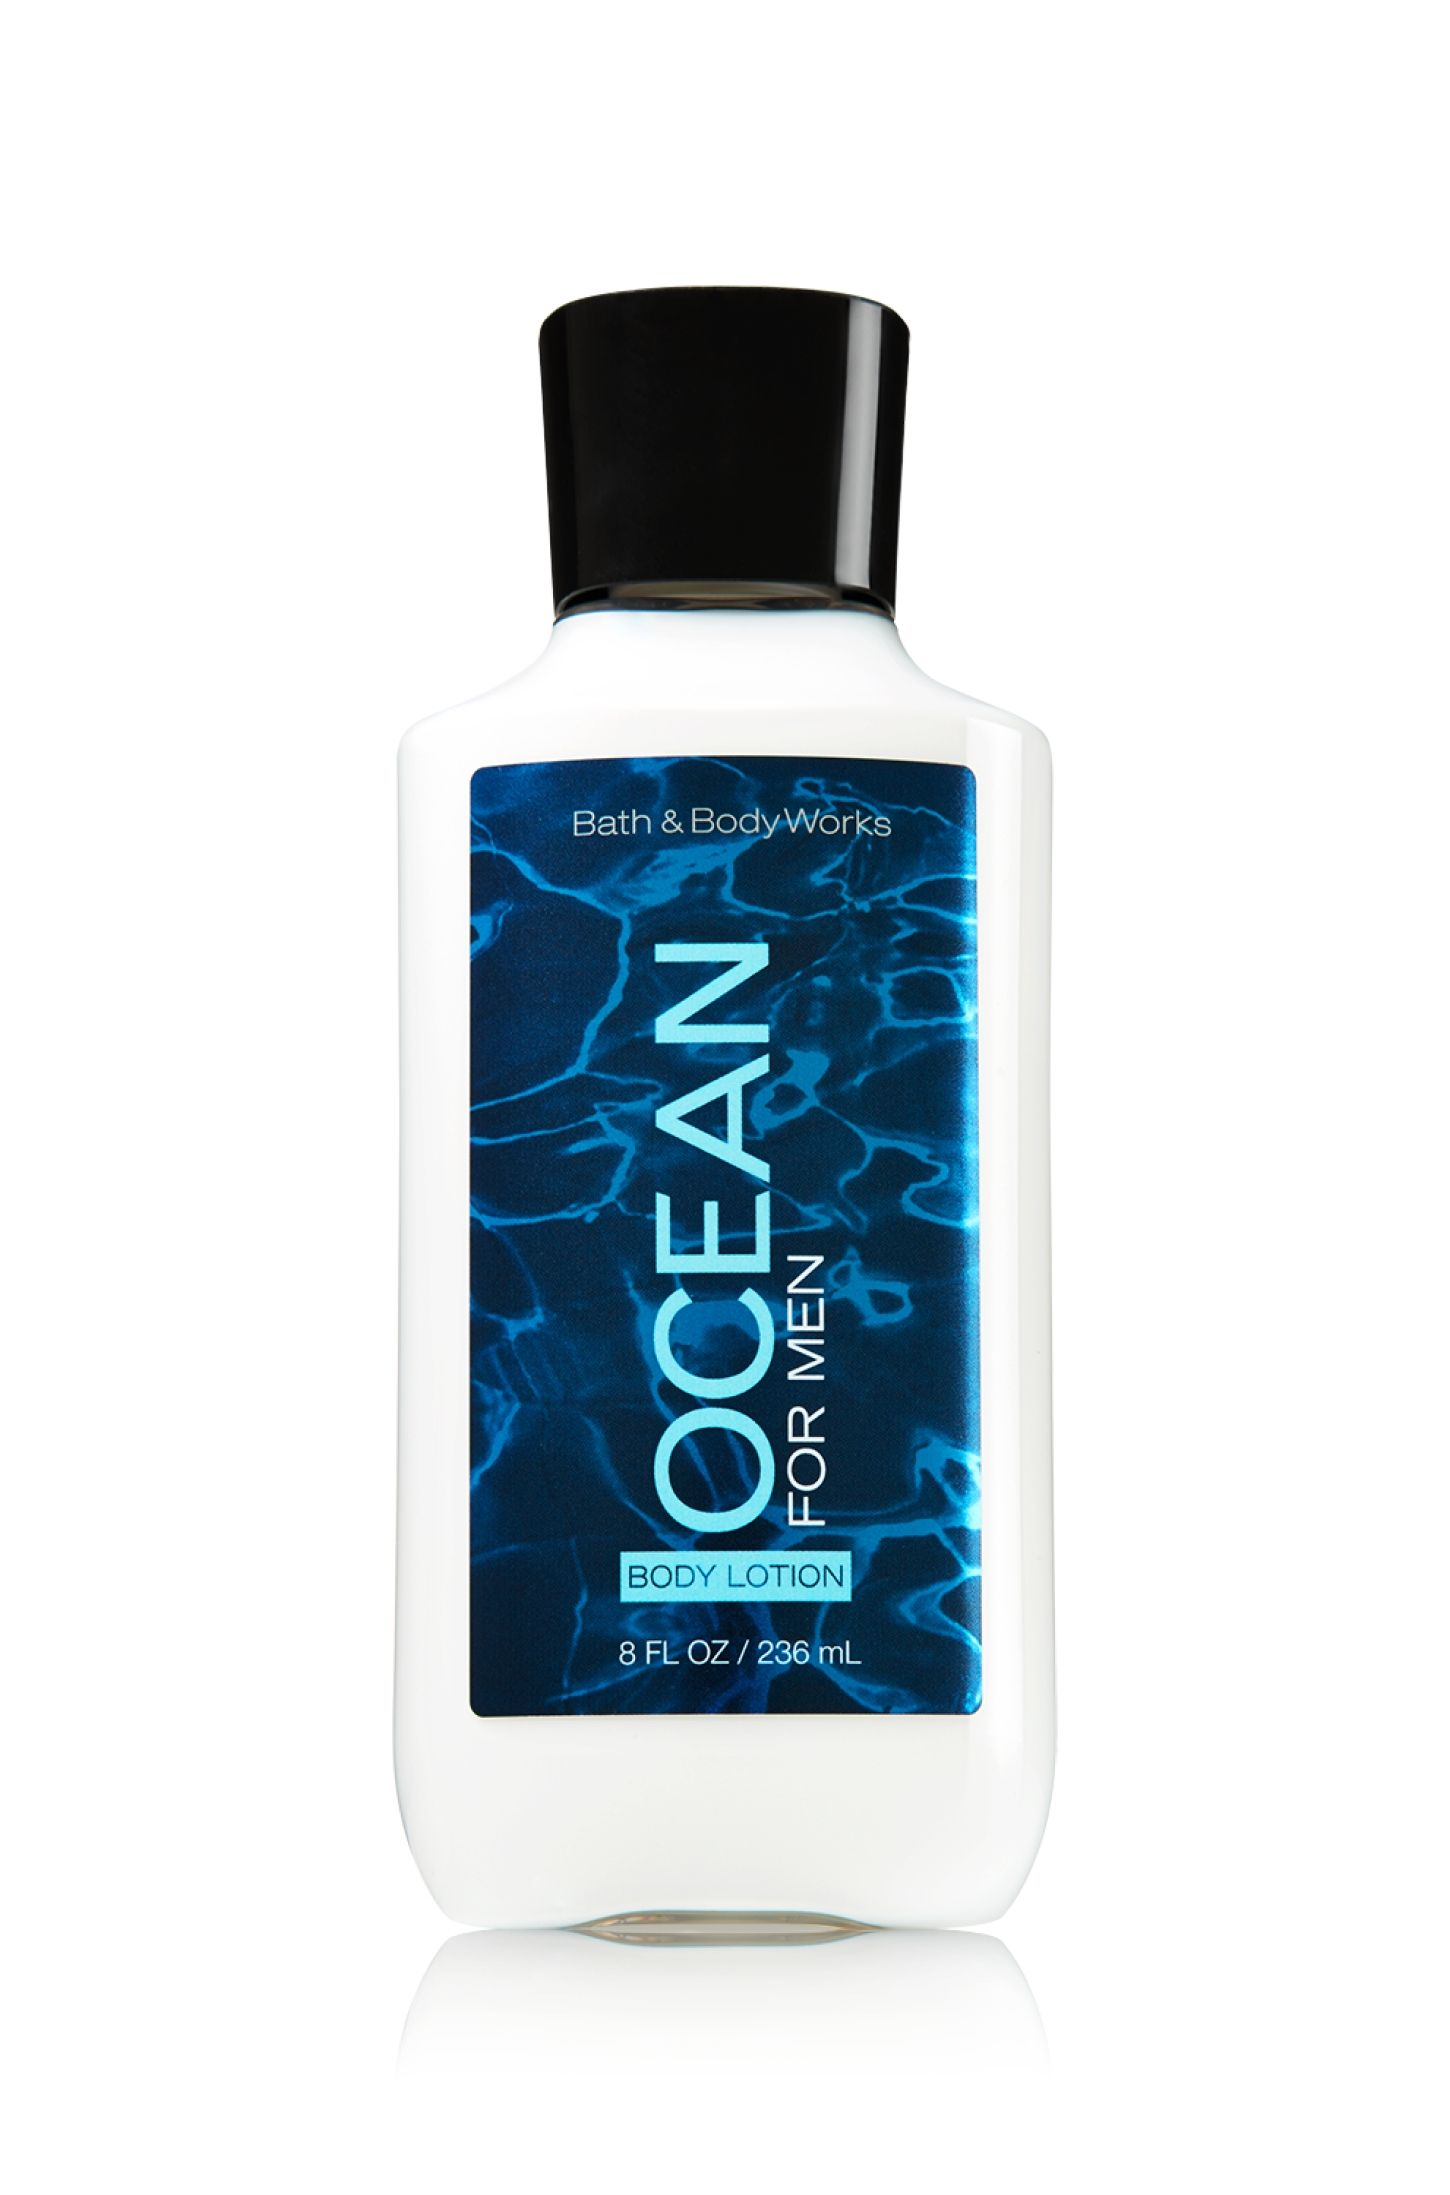 mens body lotion ocean google search fashion pinterest ocean for men body lotion signature collection bath body works remember a congratulations gift for the new dad